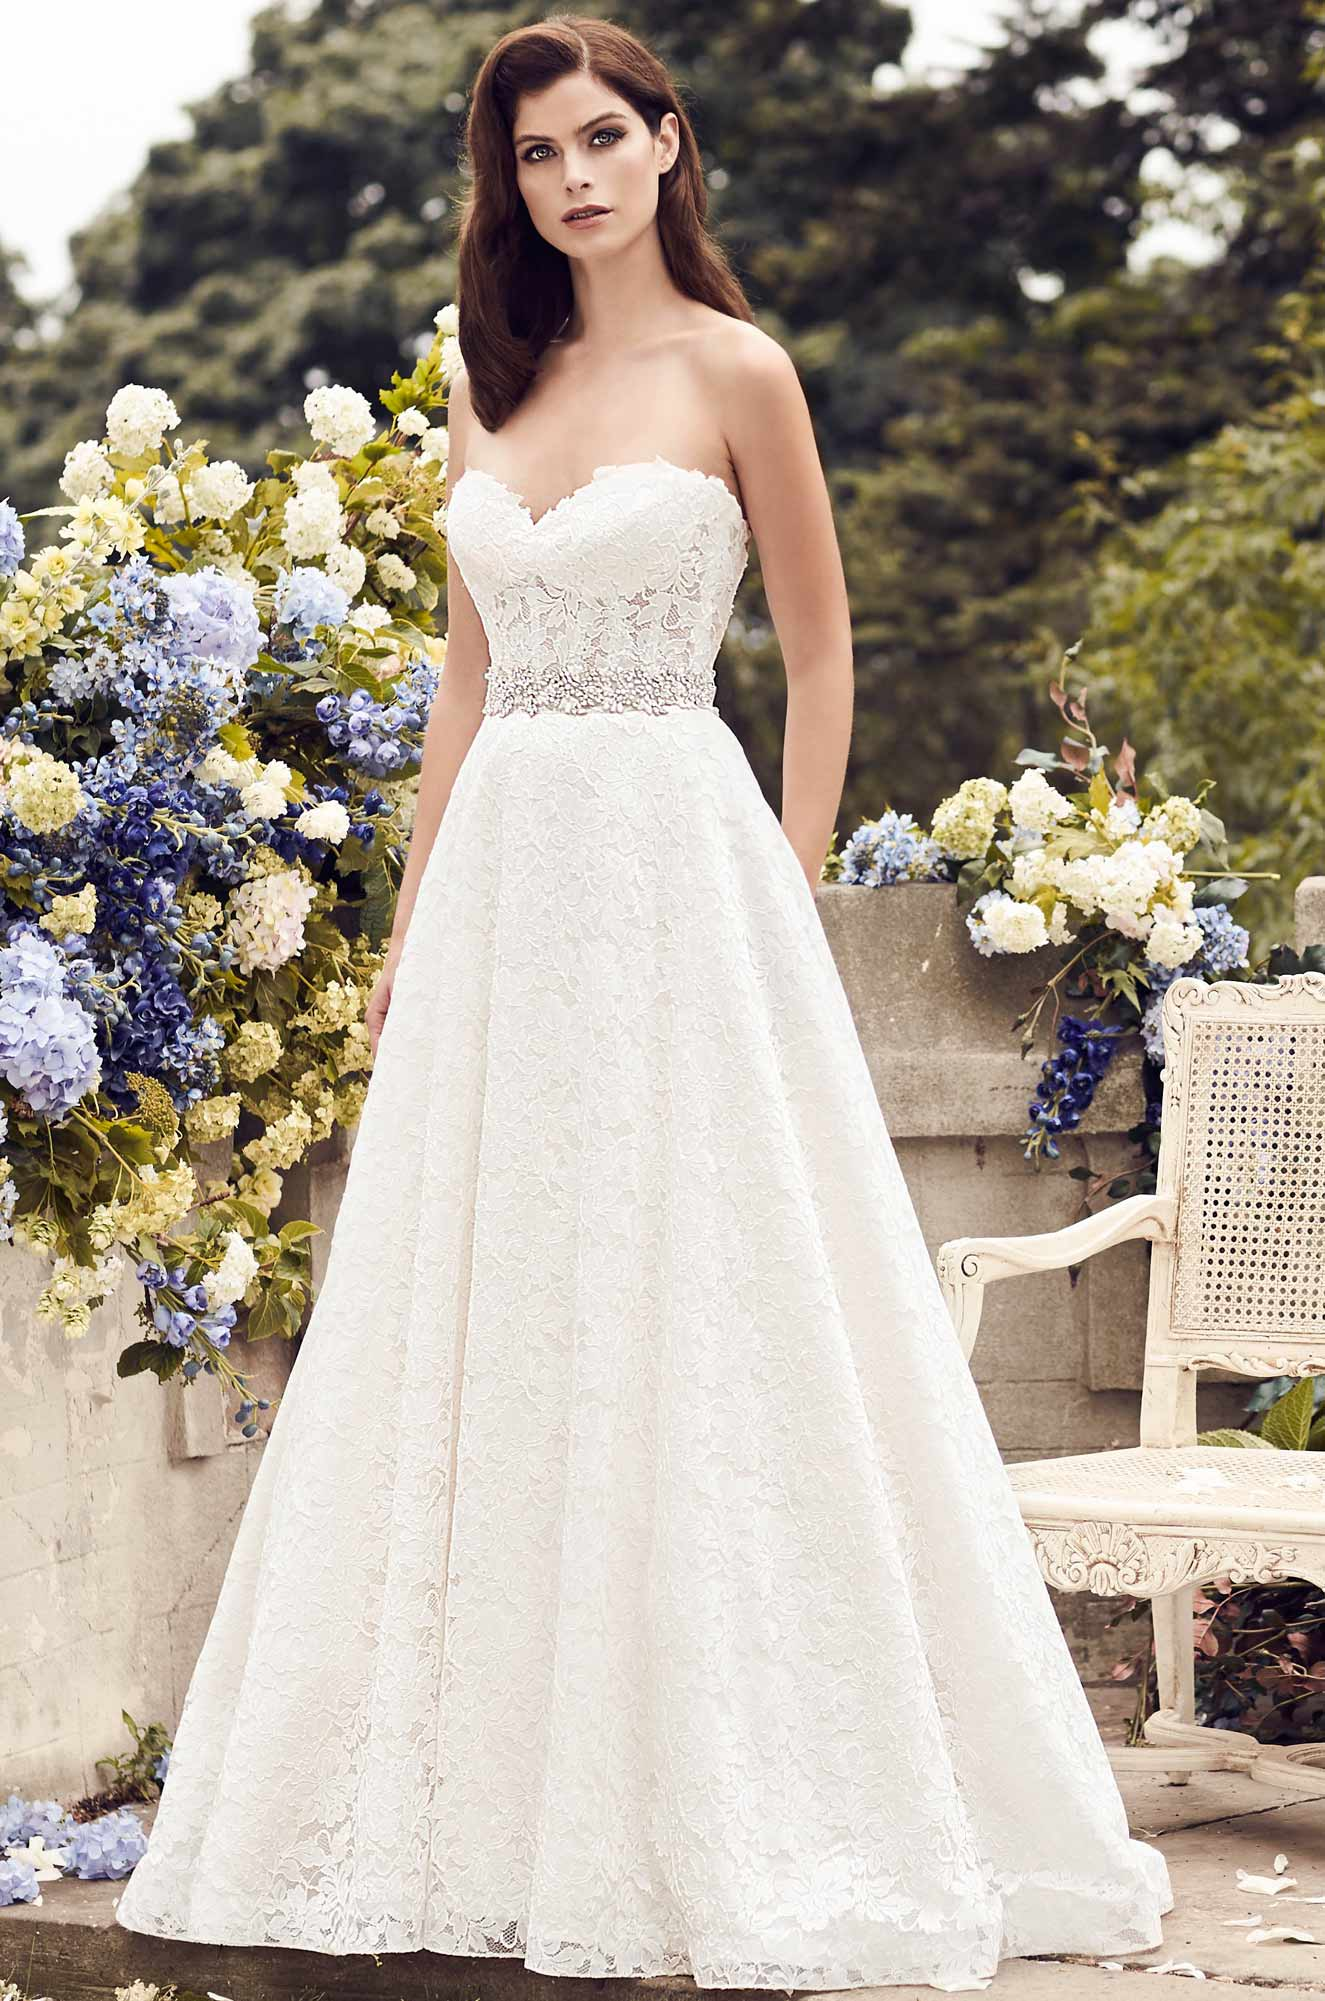 Lace Wedding Dress - Style #4738 | Paloma Blanca